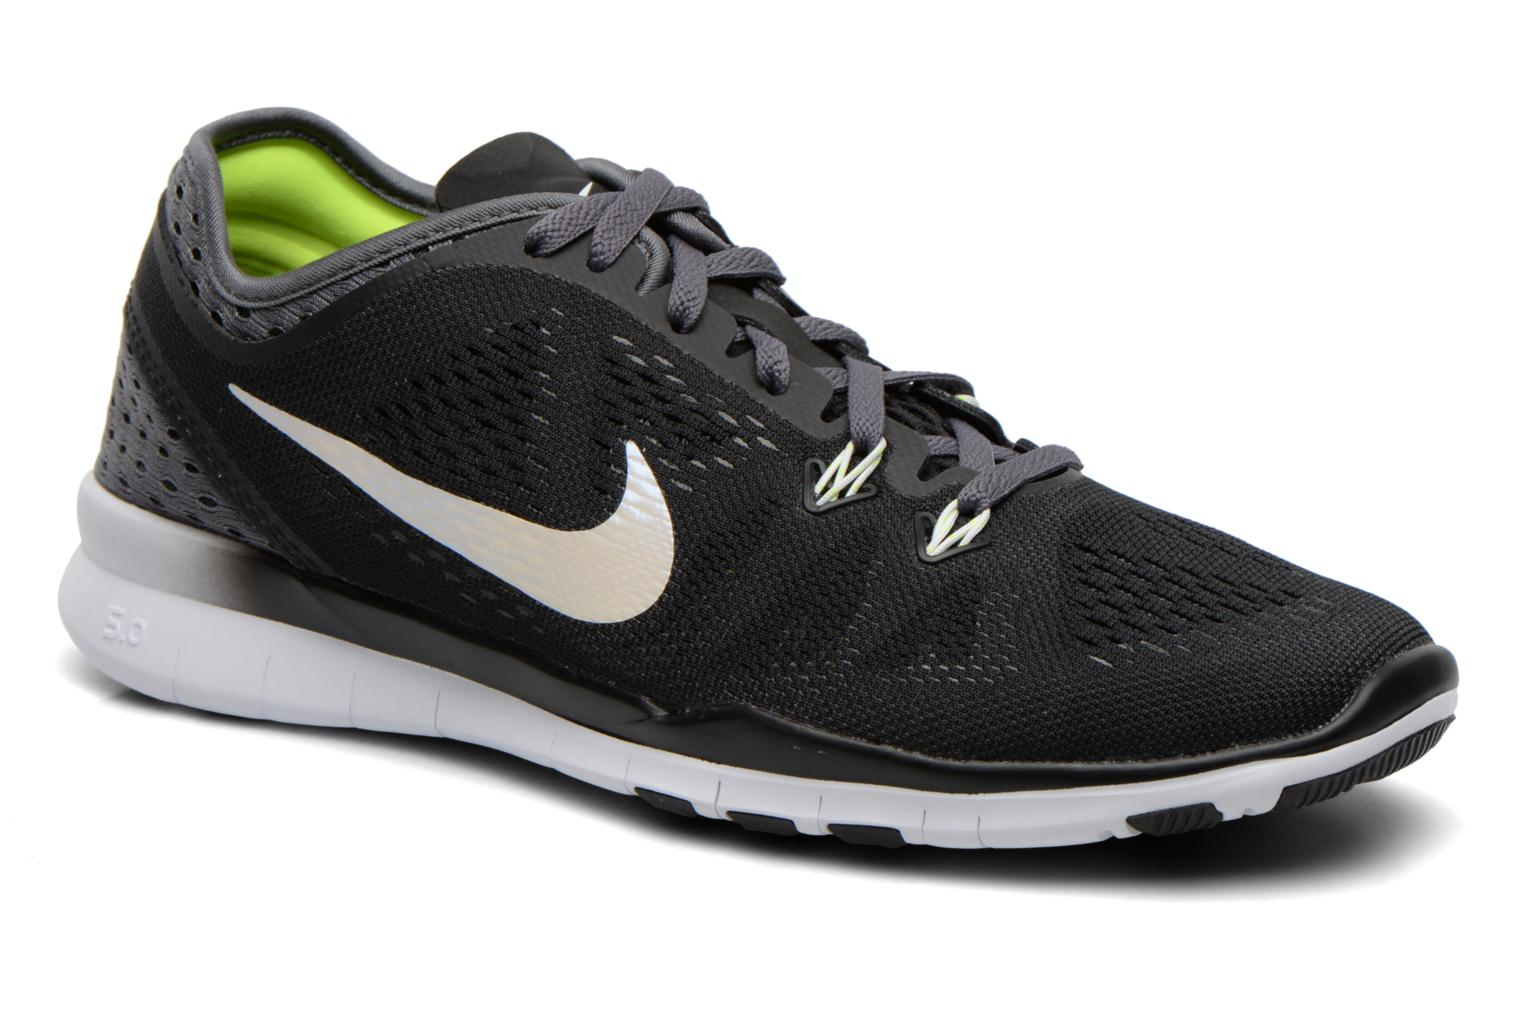 Marques Chaussure femme Nike femme W Nike Free 5.0 Tr Fit 5 Brthe BLACK/WHITE-DARK GREY